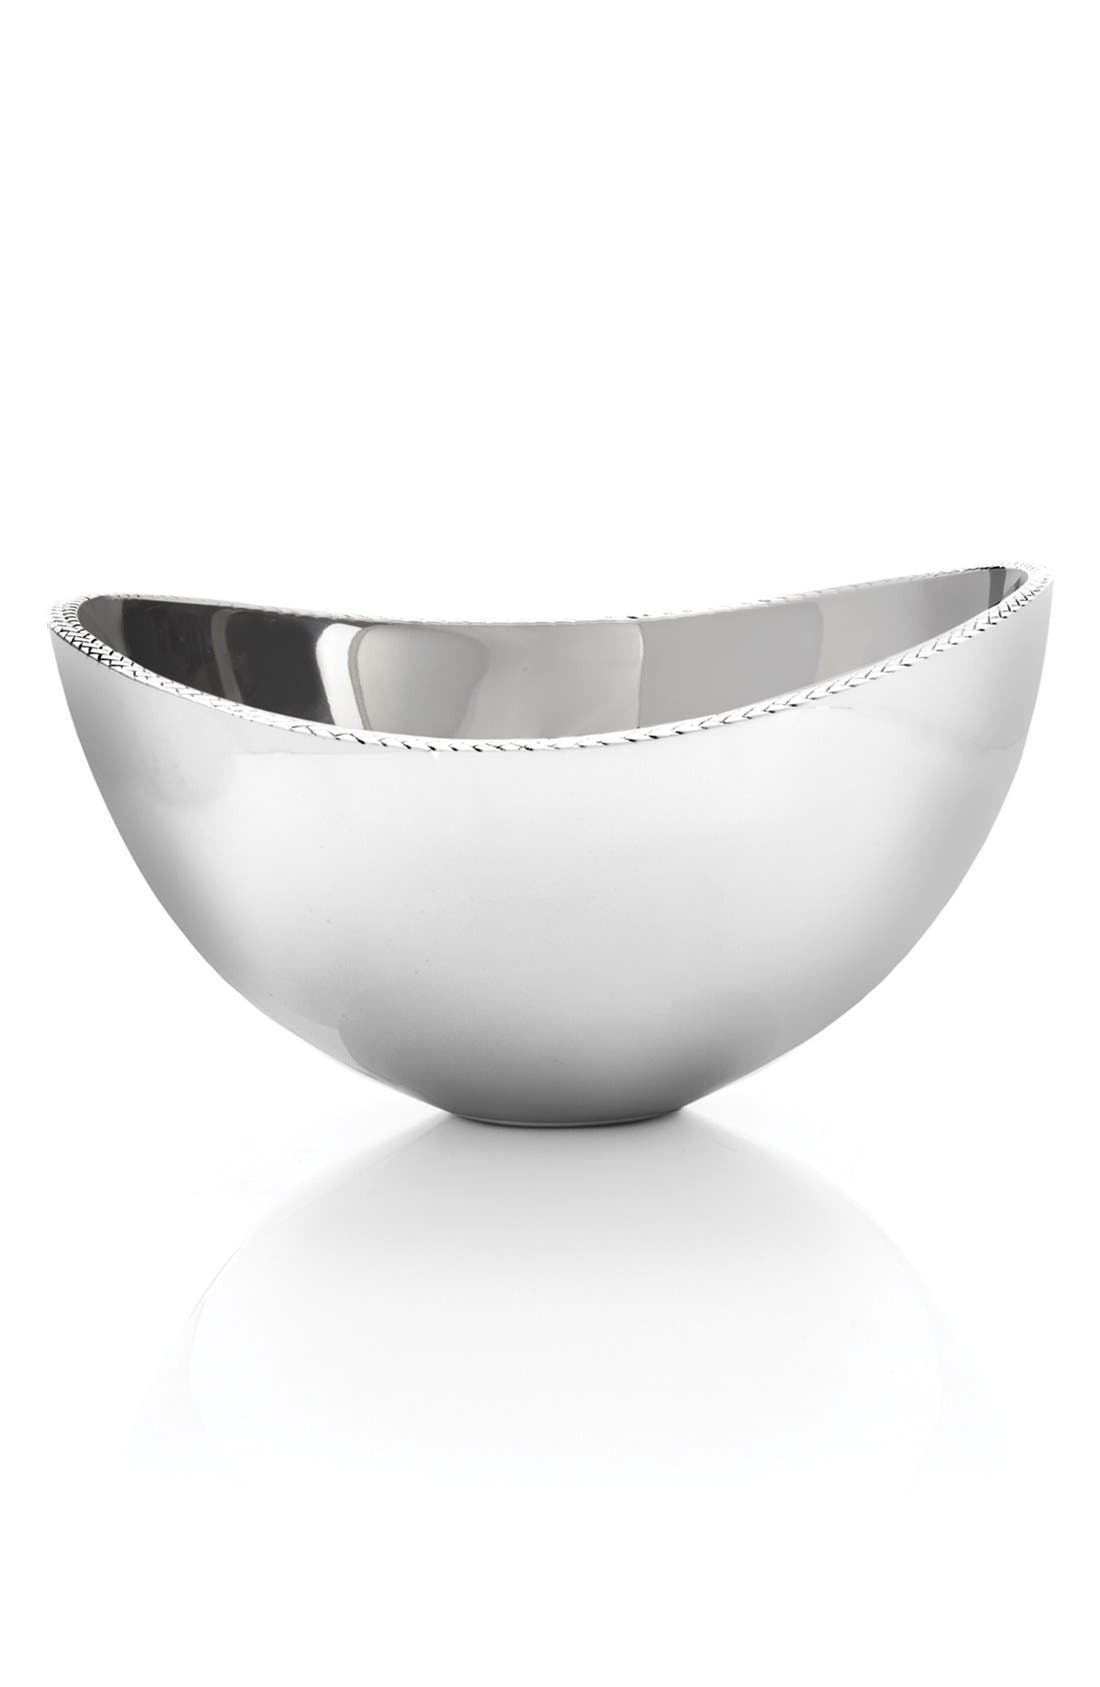 'Braid' Serving Bowl,                             Alternate thumbnail 3, color,                             040